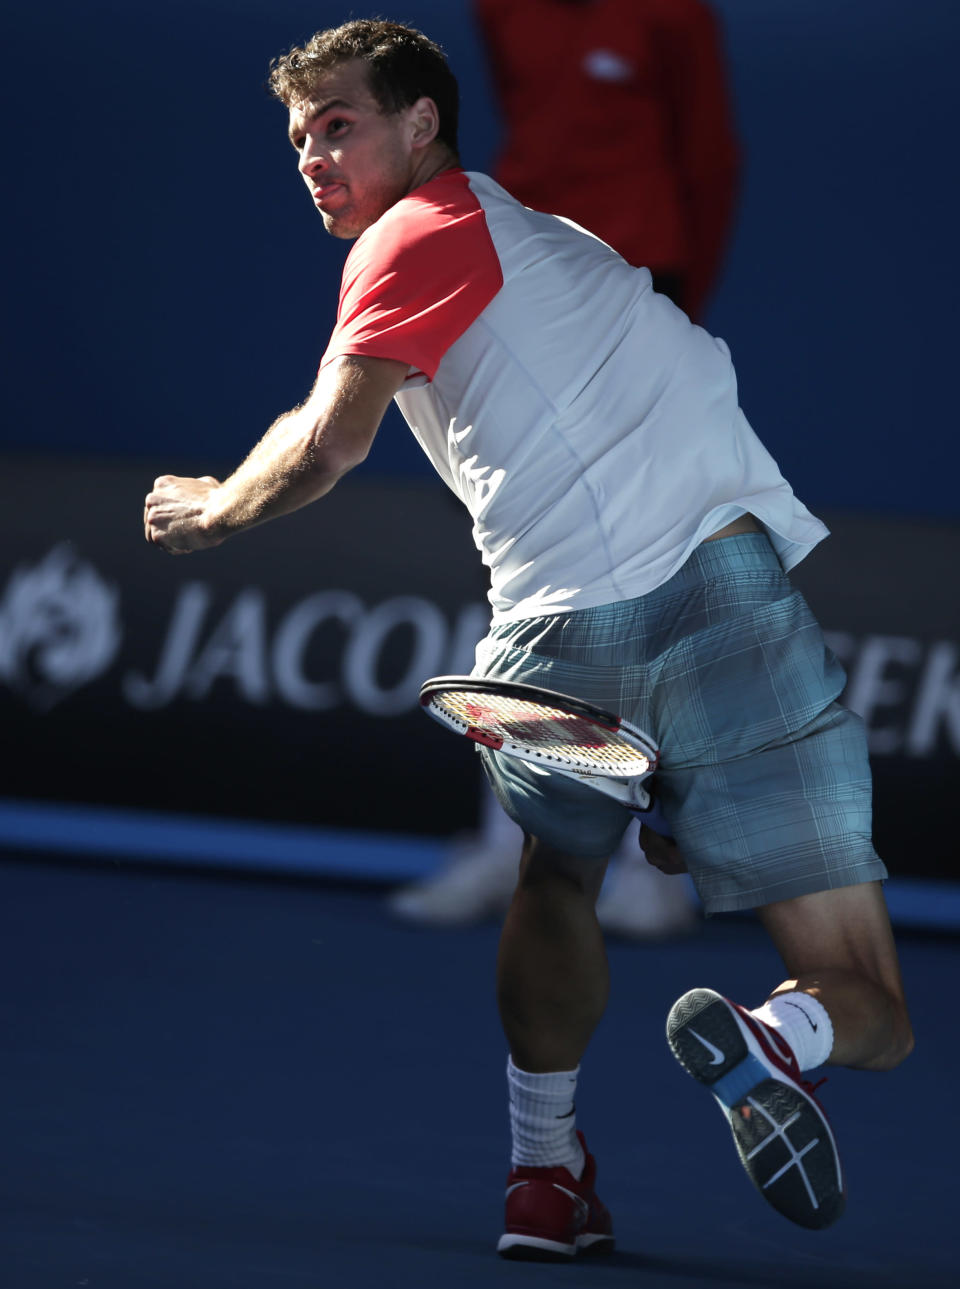 Grigor Dimitrov of Bulgaria hits a return between legs to Rafael Nadal of Spain during their quarterfinal at the Australian Open tennis championship in Melbourne, Australia, Wednesday, Jan. 22, 2014.(AP Photo/Rick Rycroft)